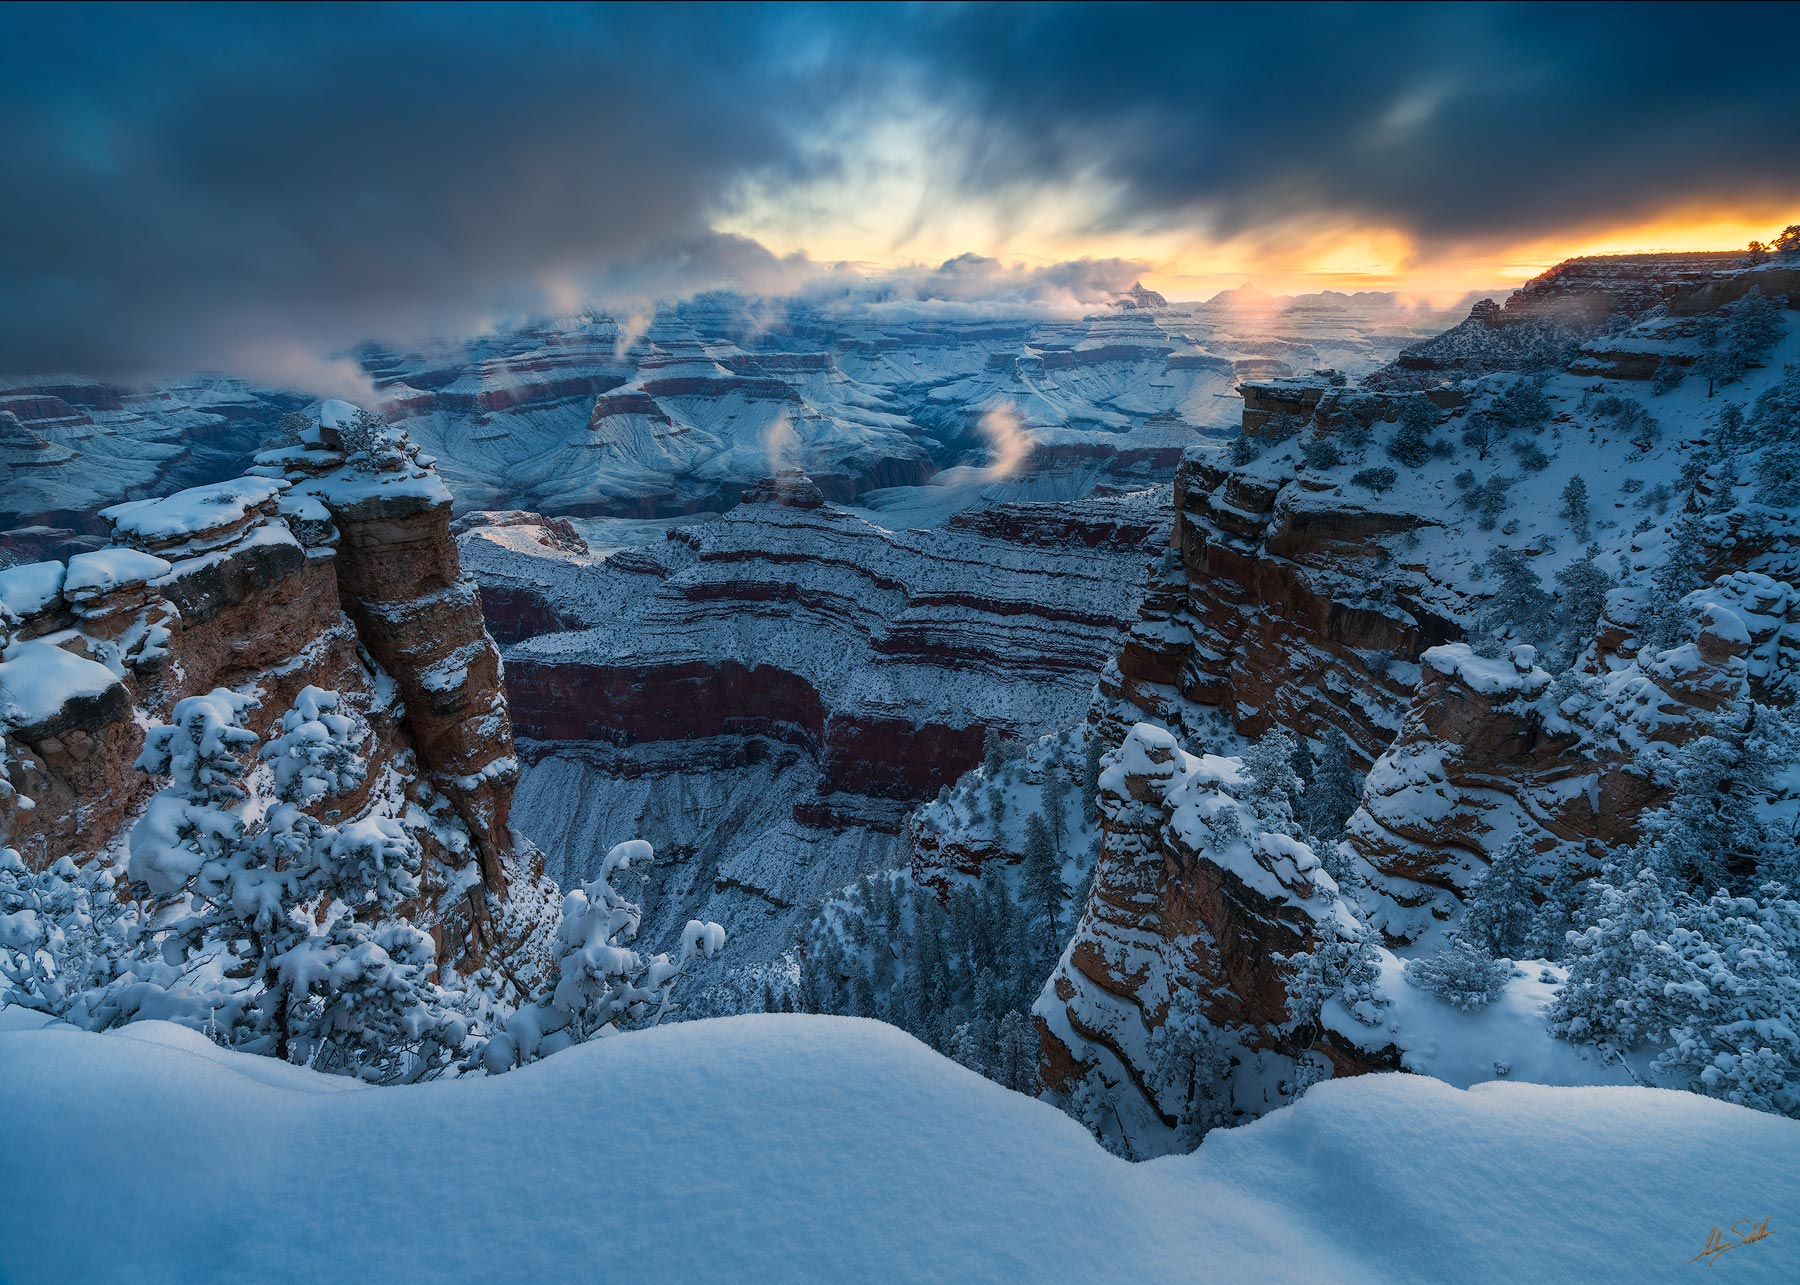 First light of the new year from the South Rim of Grand Canyon National Park. We were also greeted with fresh snow all the way...